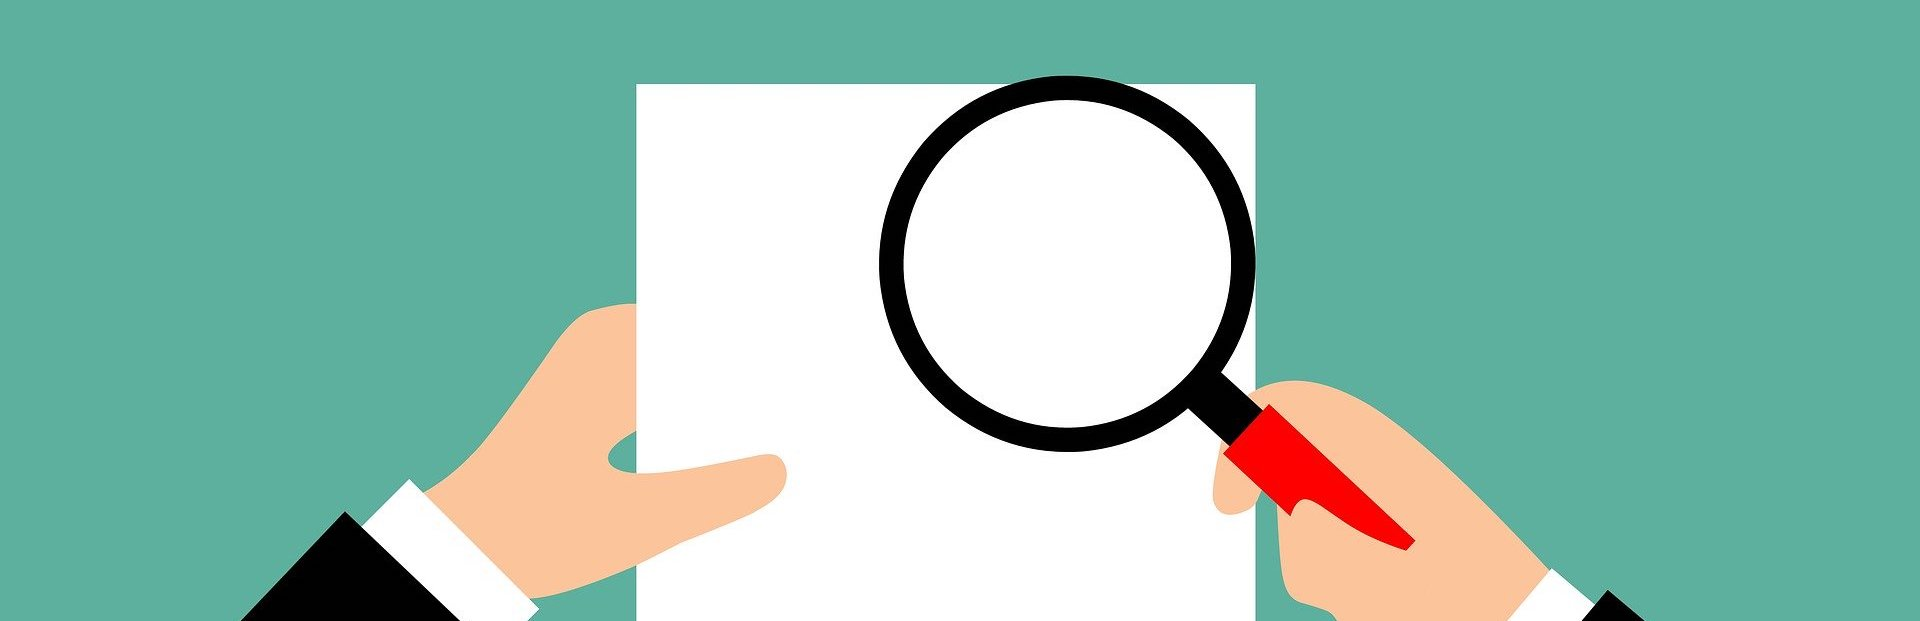 An illustration of a person using a magnifying glass to inspect a document